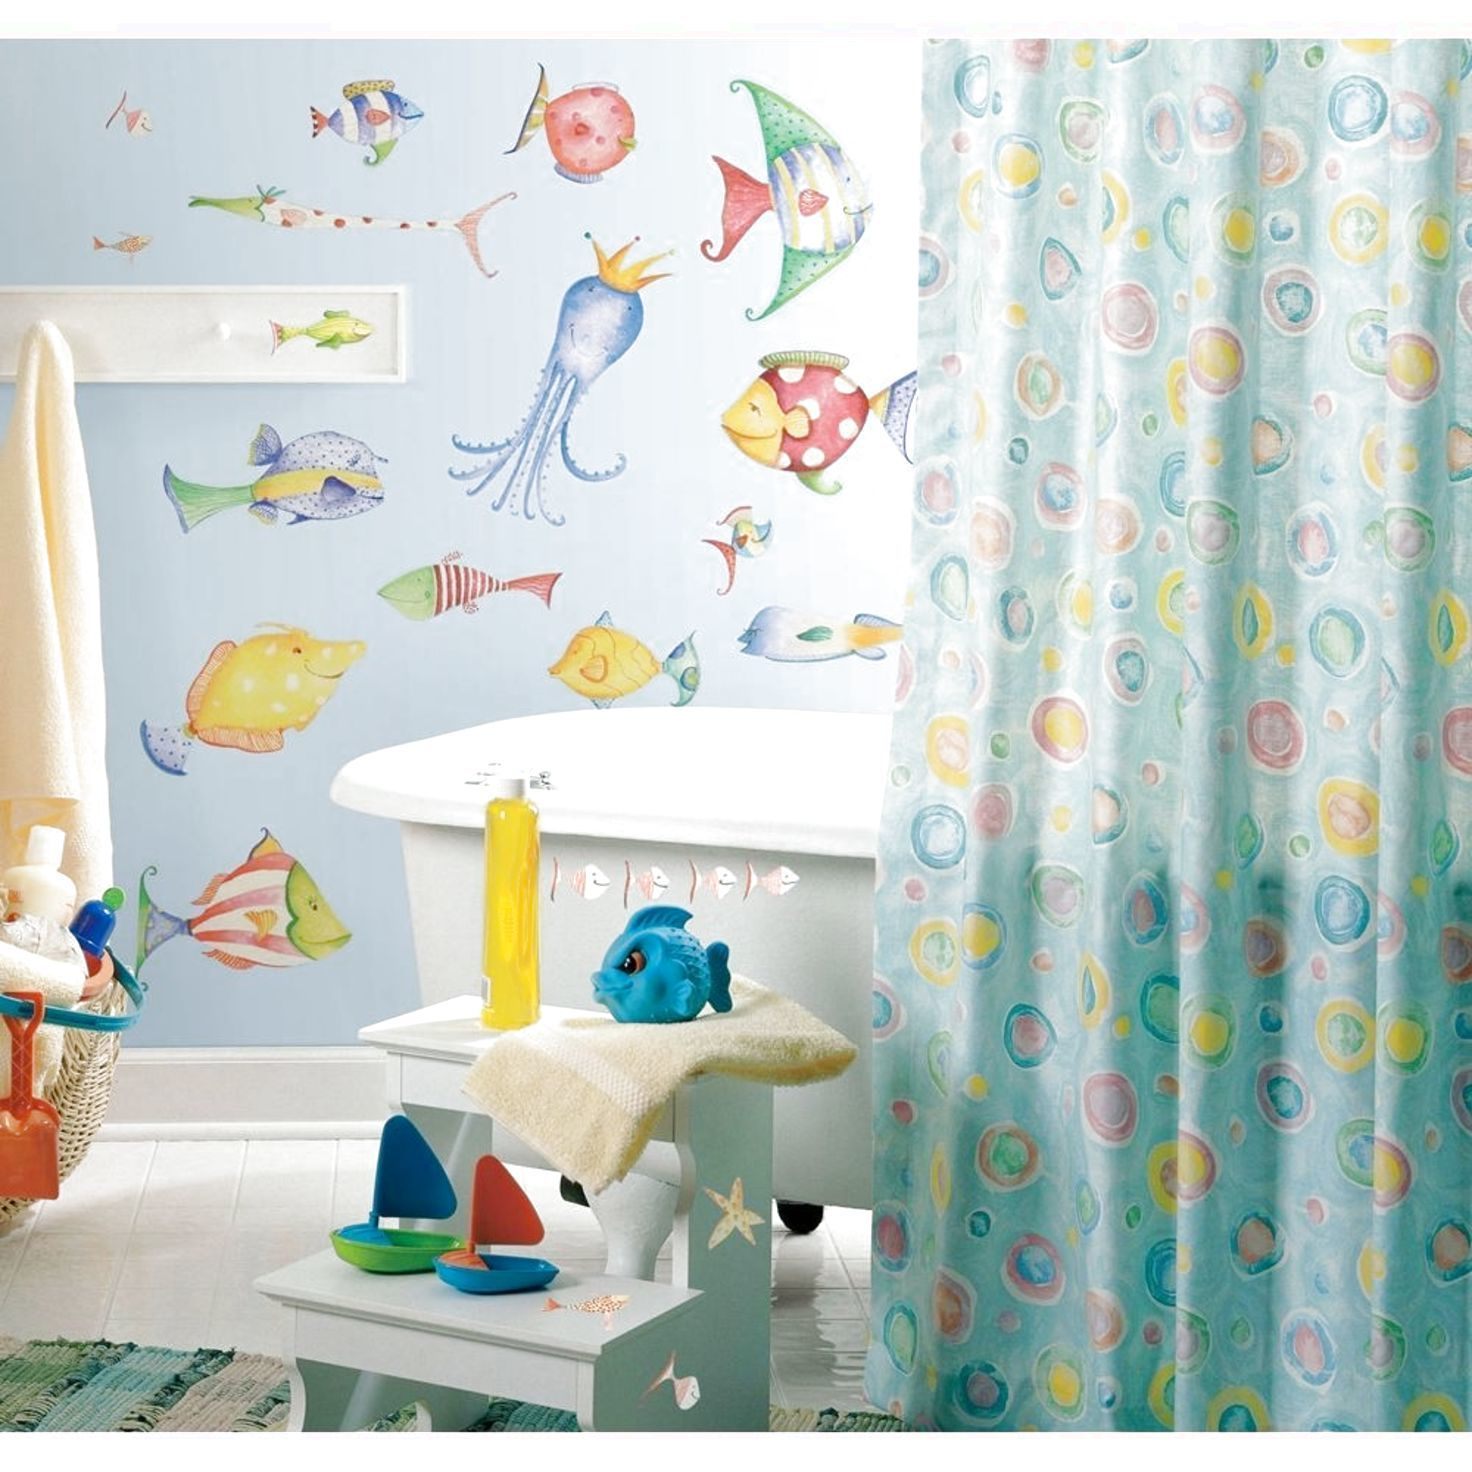 New Sea Creatures Wall Decals Tropical Fish Bathroom Stickers